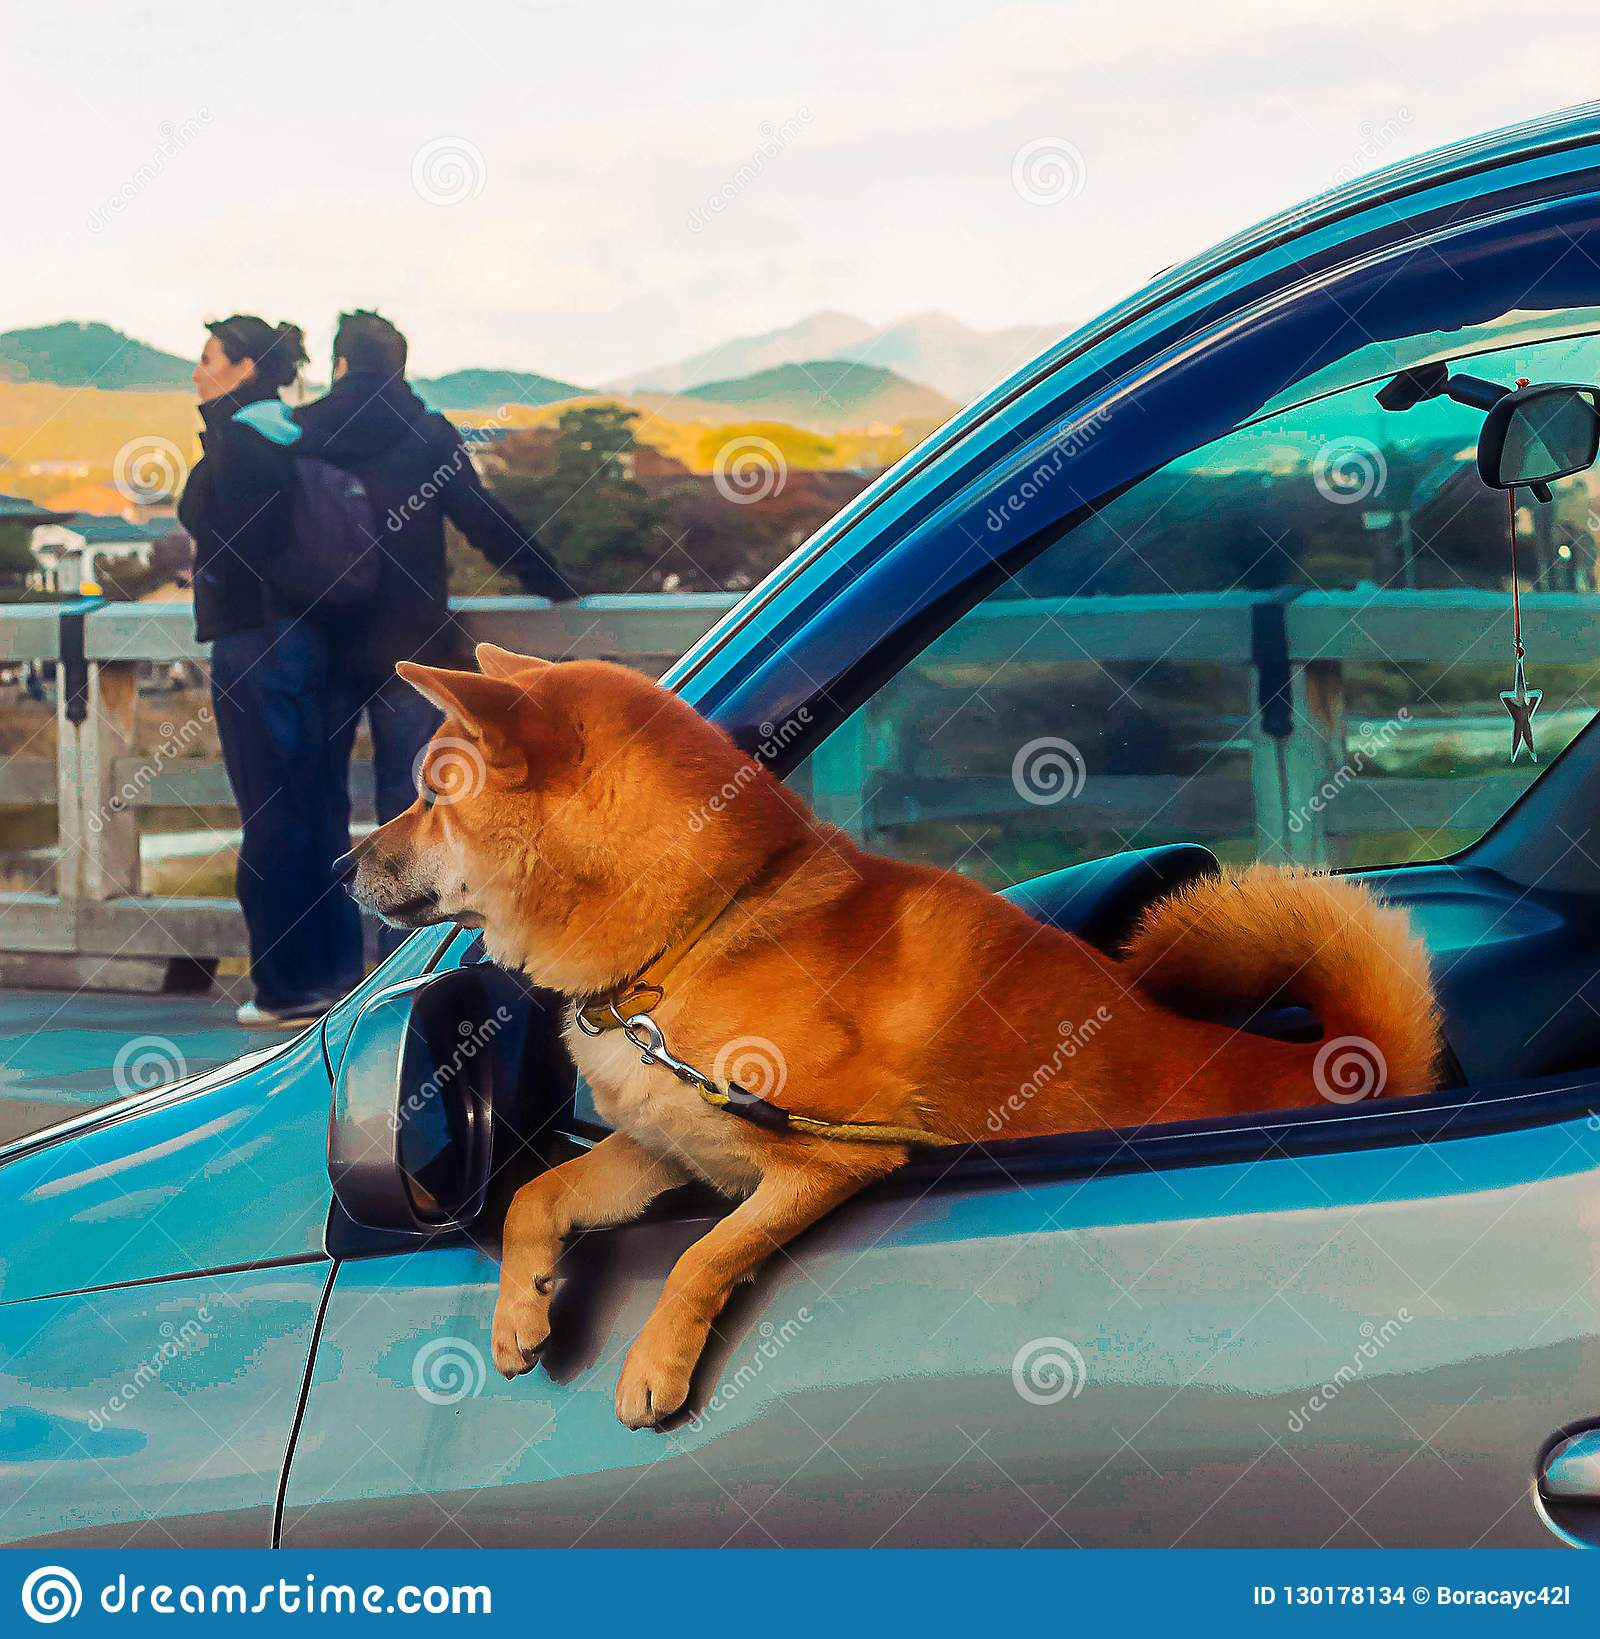 Kyoto, Japan - 2010: shiba inu dog looking out of car